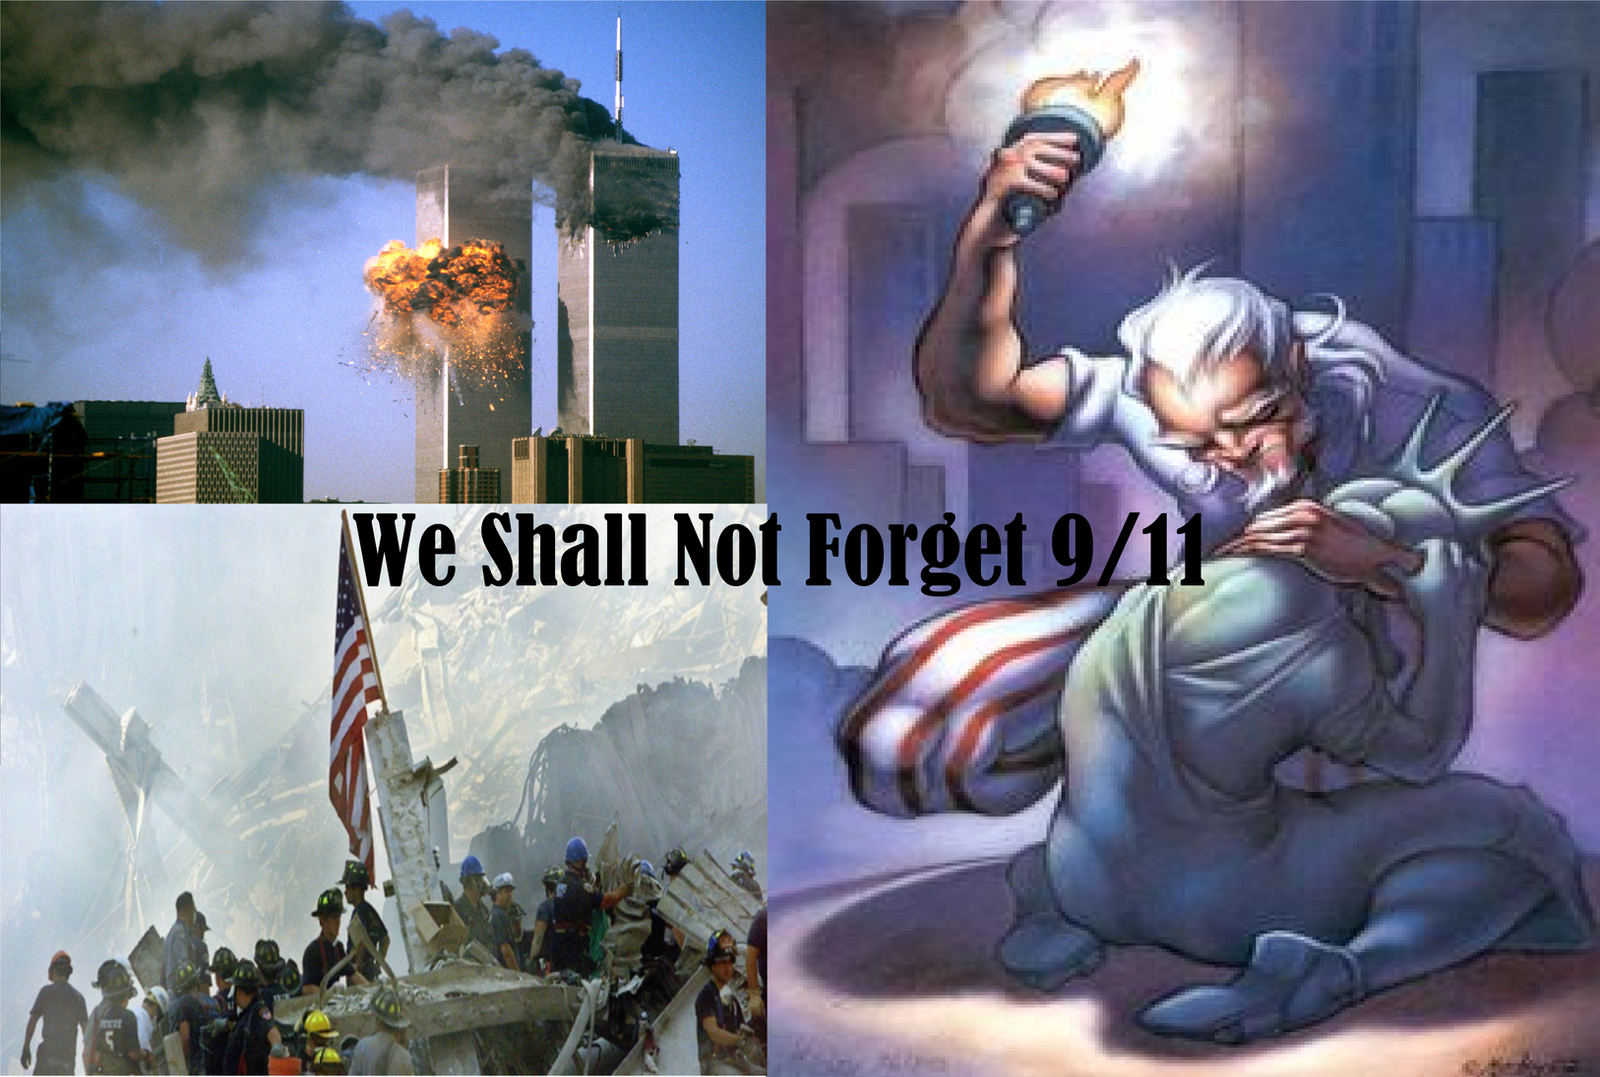 We shall not forget 9/11 by WFTC141